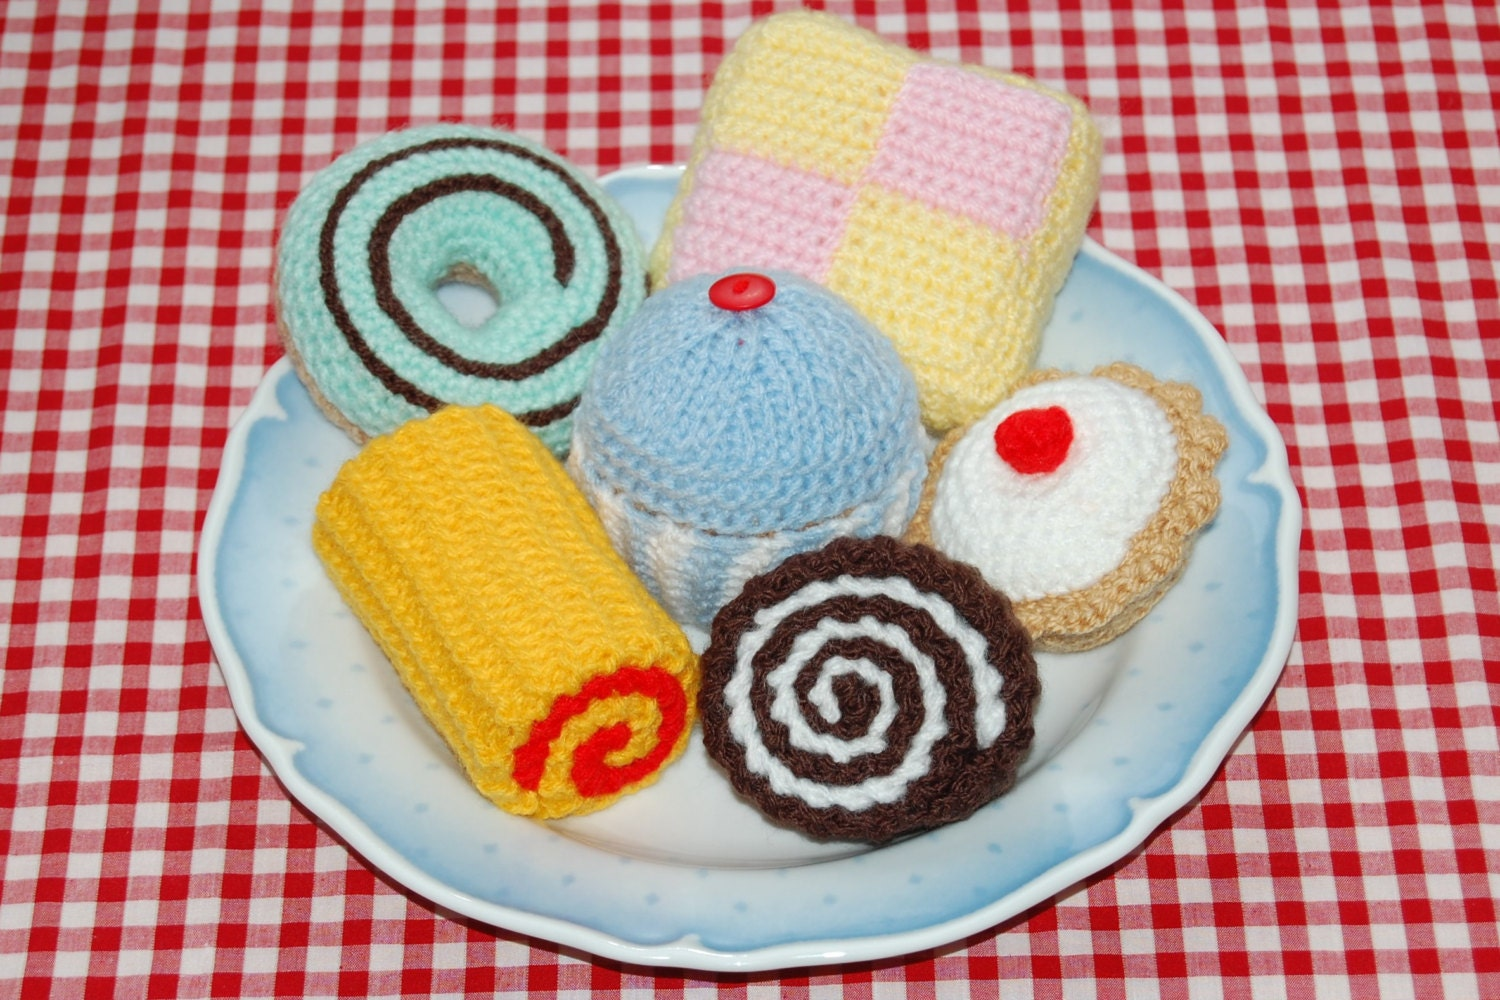 Knitted Cakes Free Patterns : Knitting & Crochet Patterns for a Selection of Cakes - Knitted Toy / Play...